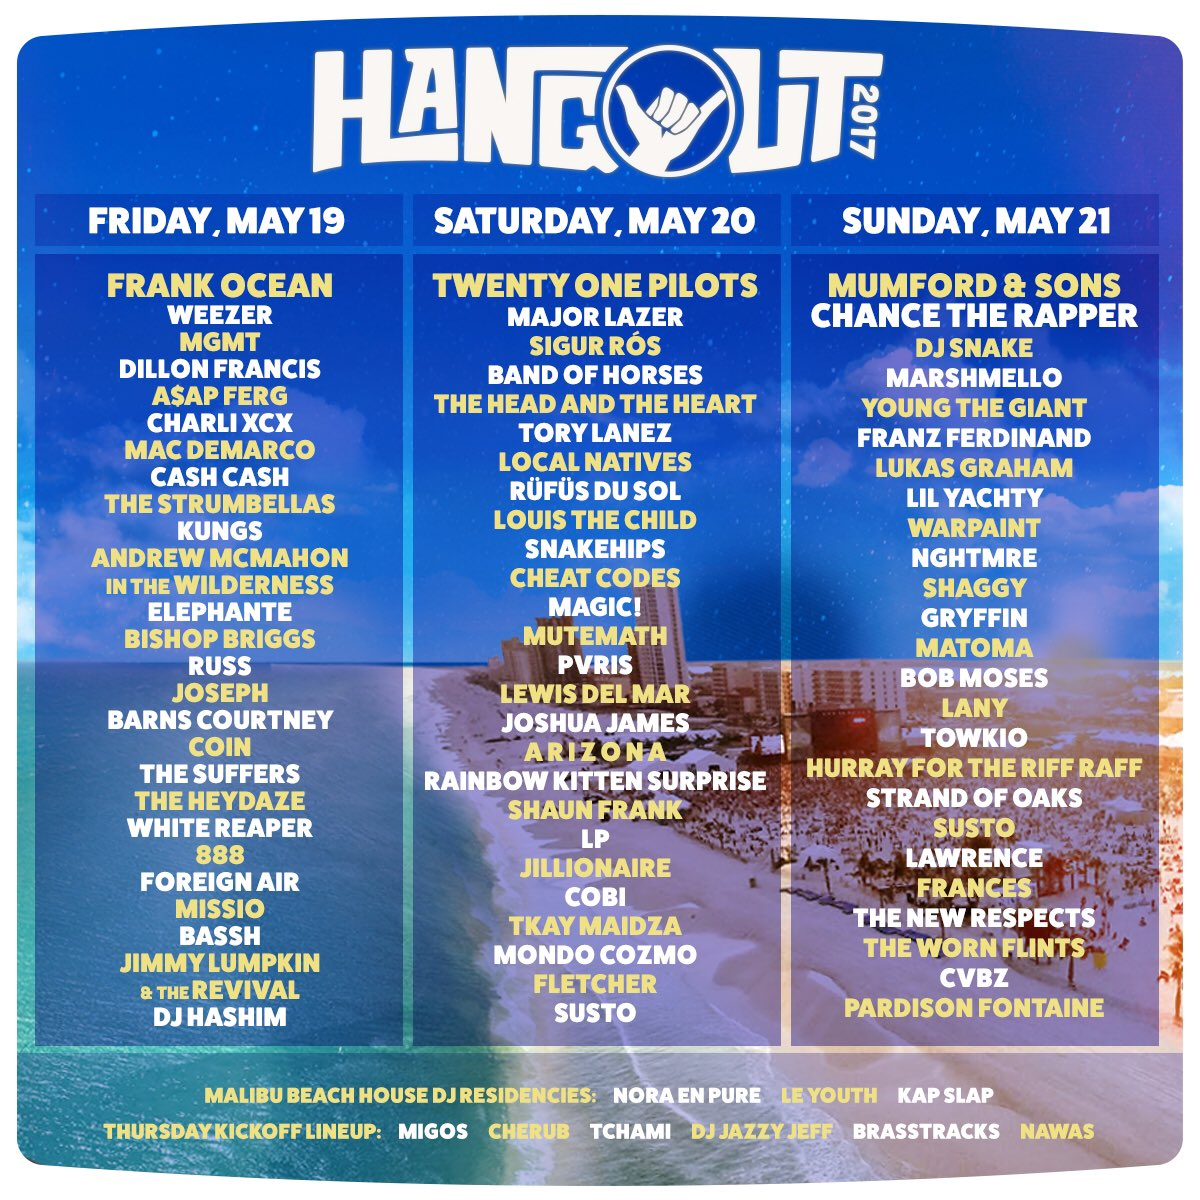 Daily lineups are here!